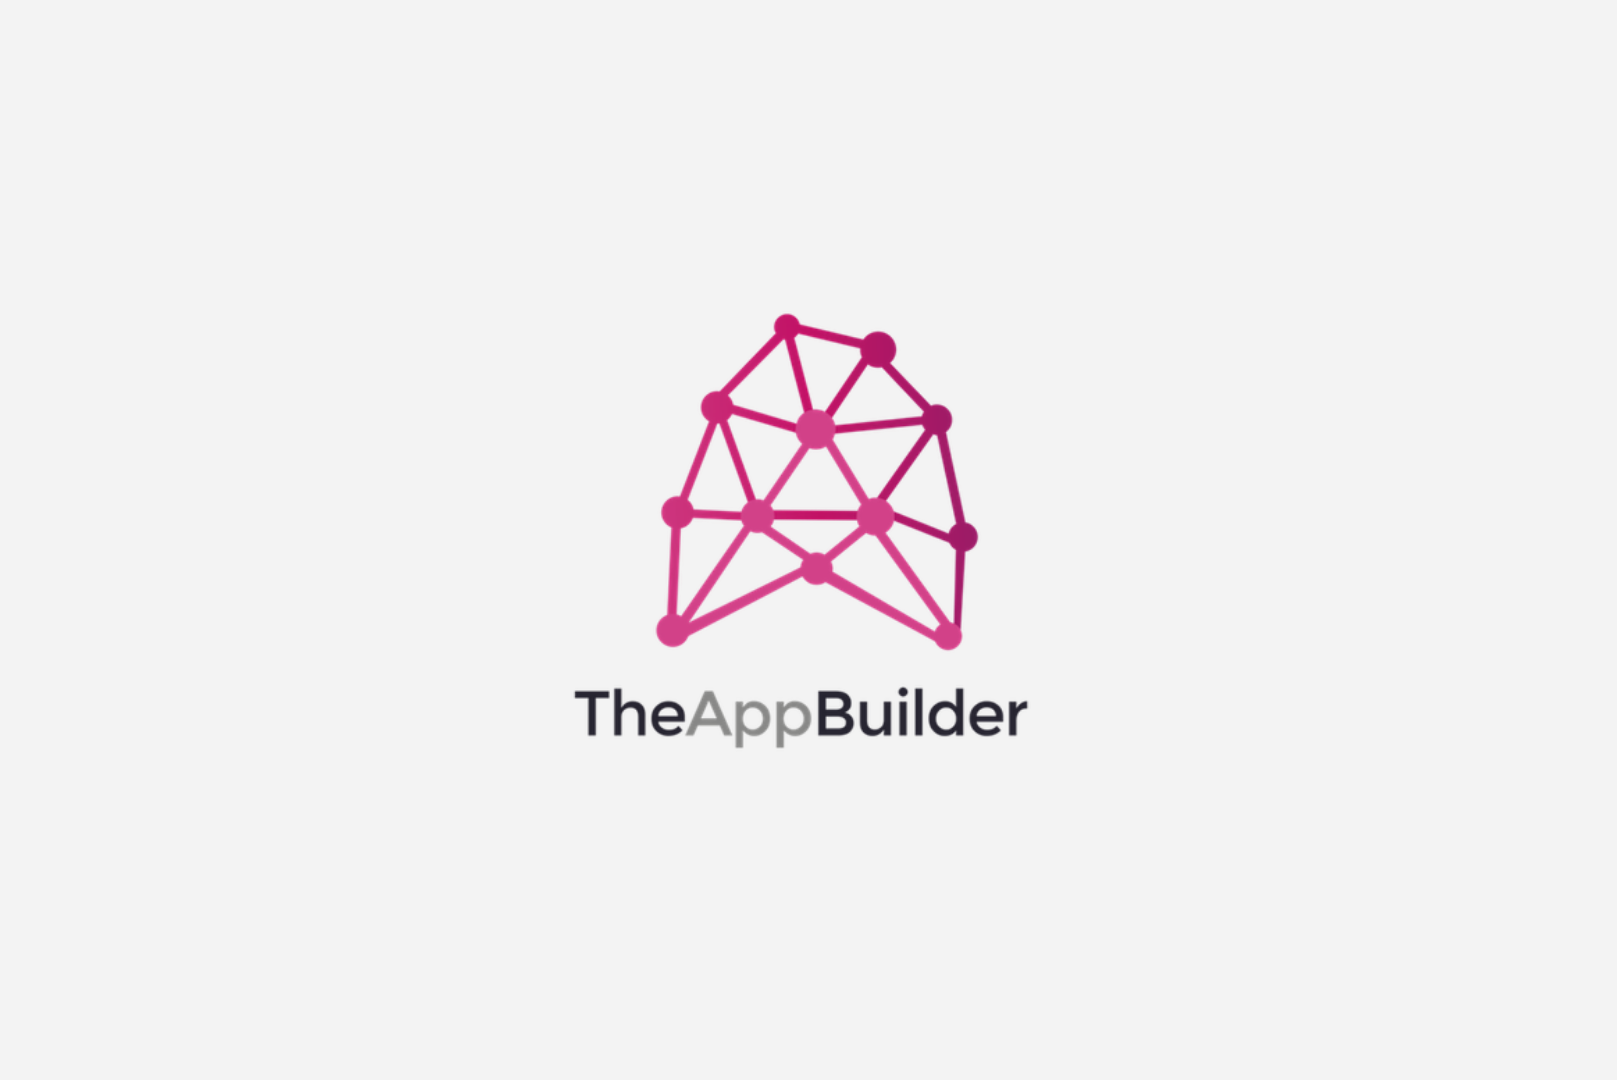 TheAppBuilder for Android